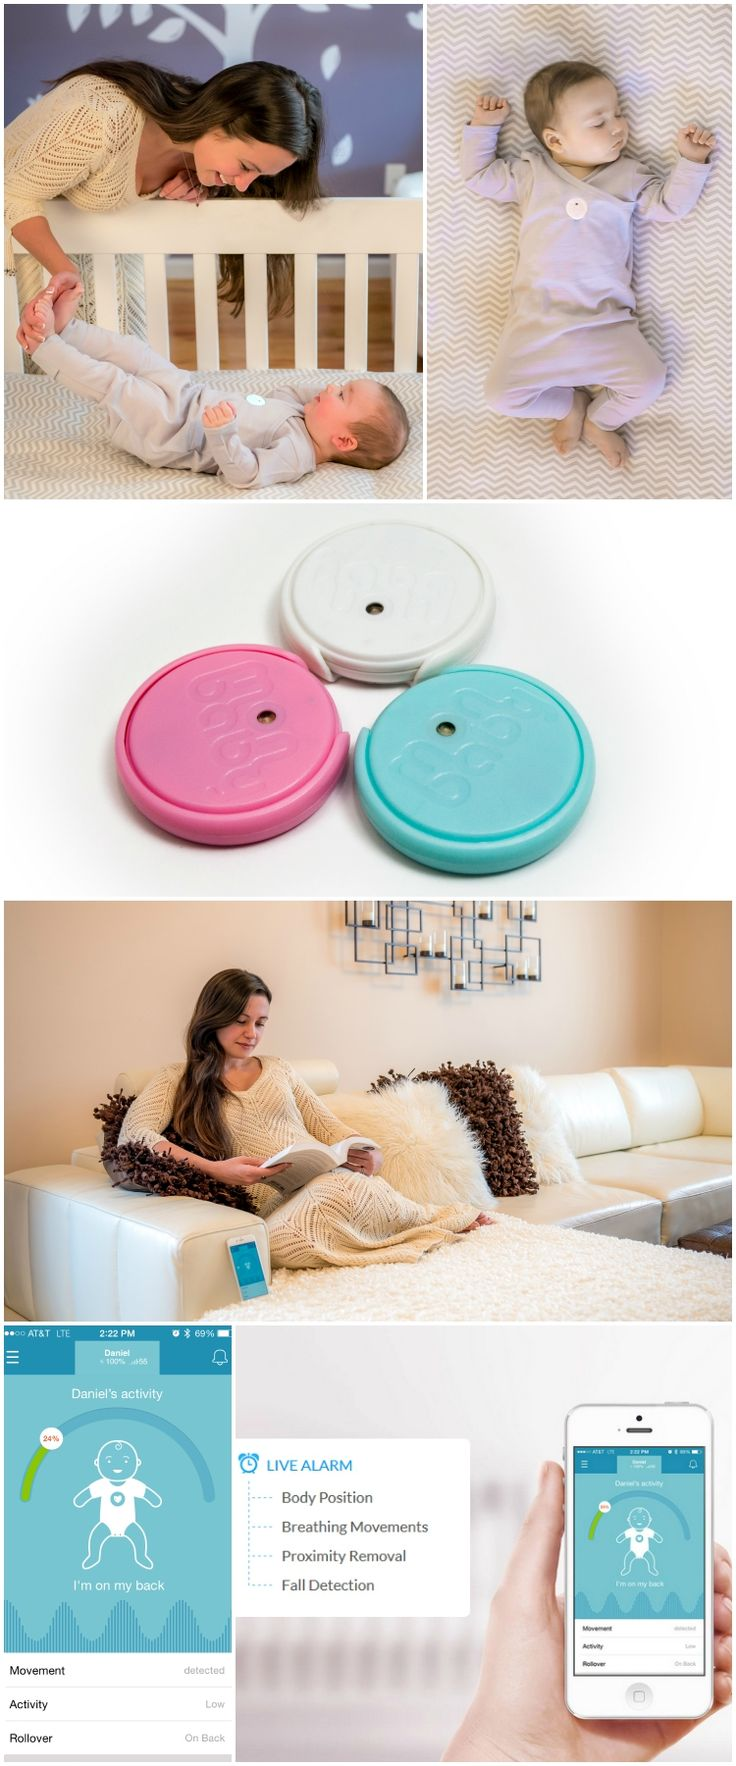 MonBaby gives new moms and dads peace of mind and helps them sleep better knowing they will receive an audible alarm if the baby rolls onto his or her stomach or stops breathing.